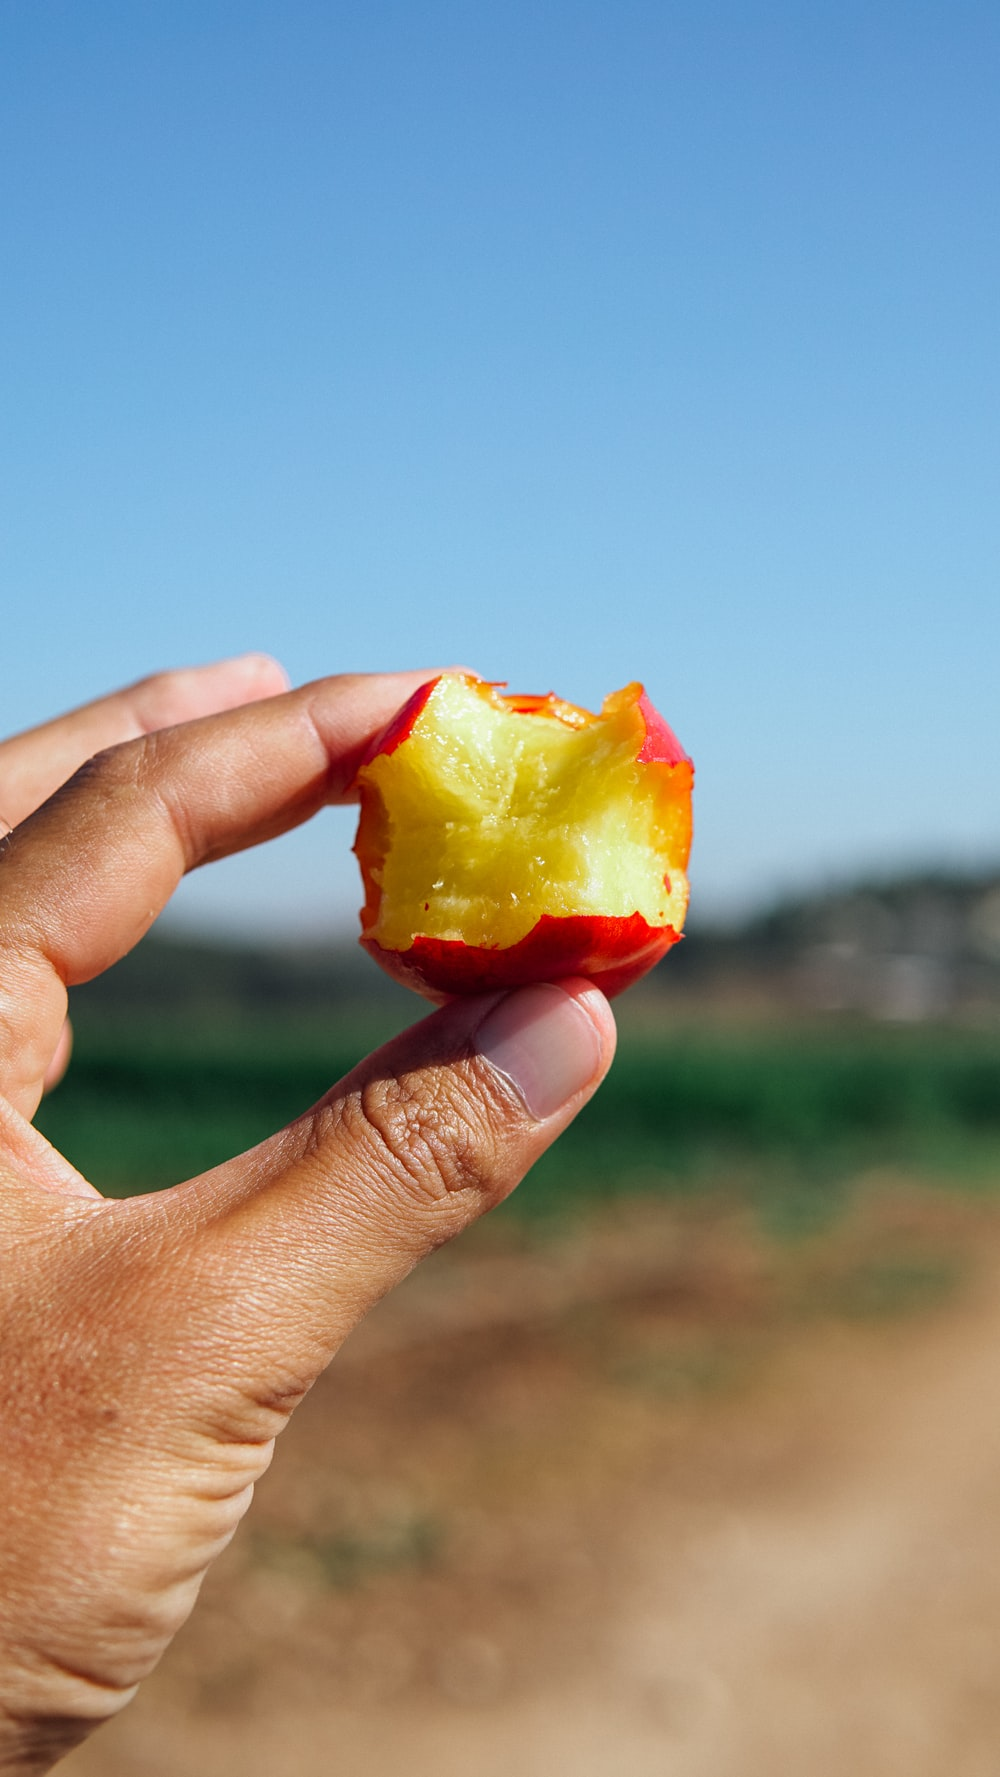 person holding yellow and red apple